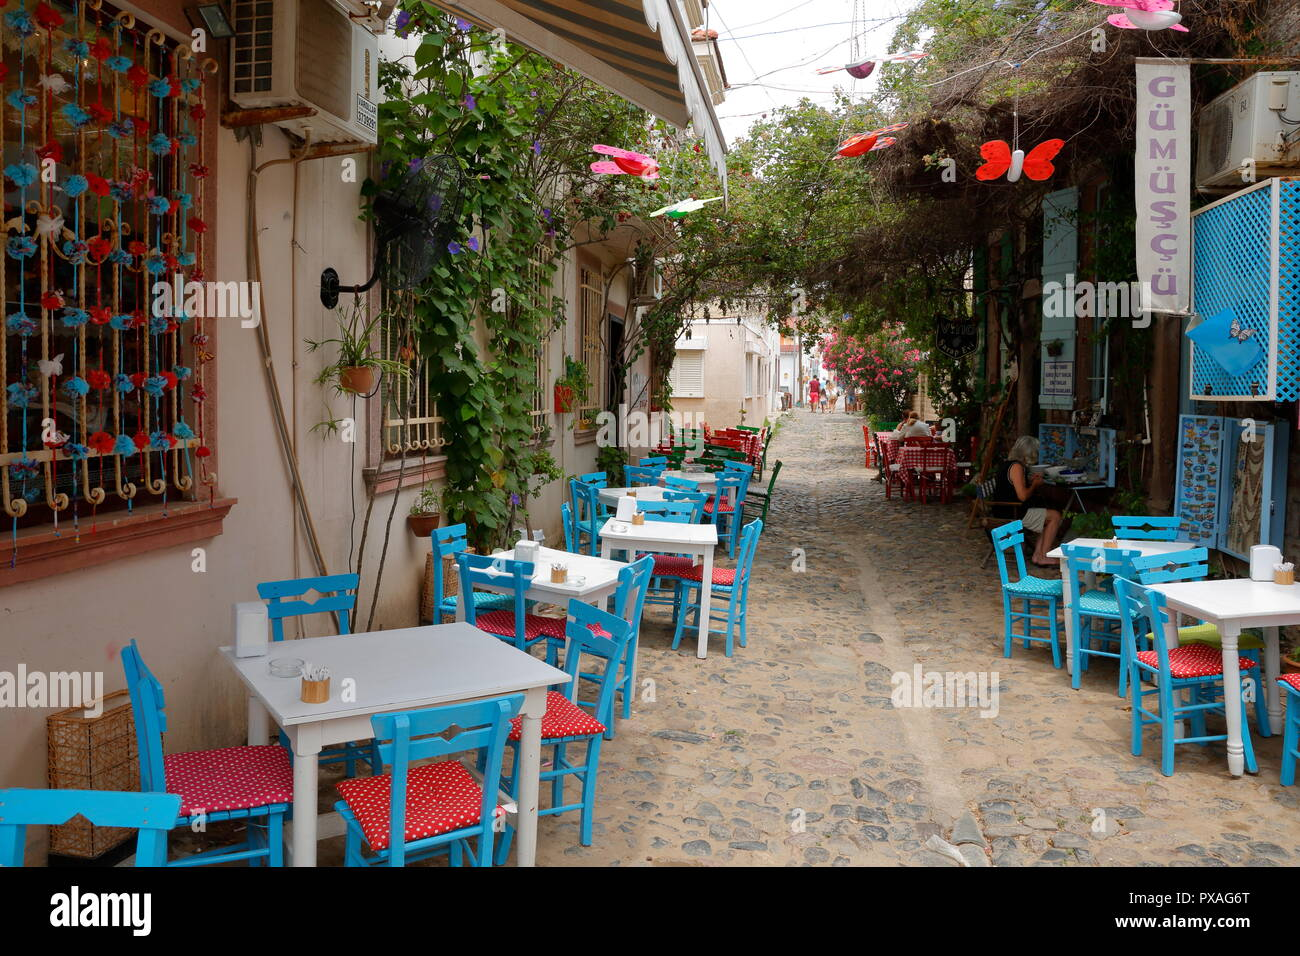 Ayvalık, Cunda adası / Turkey - June 2015: is a pleasant resort town with quaint and narrow streets with its natural beauty. - Stock Image